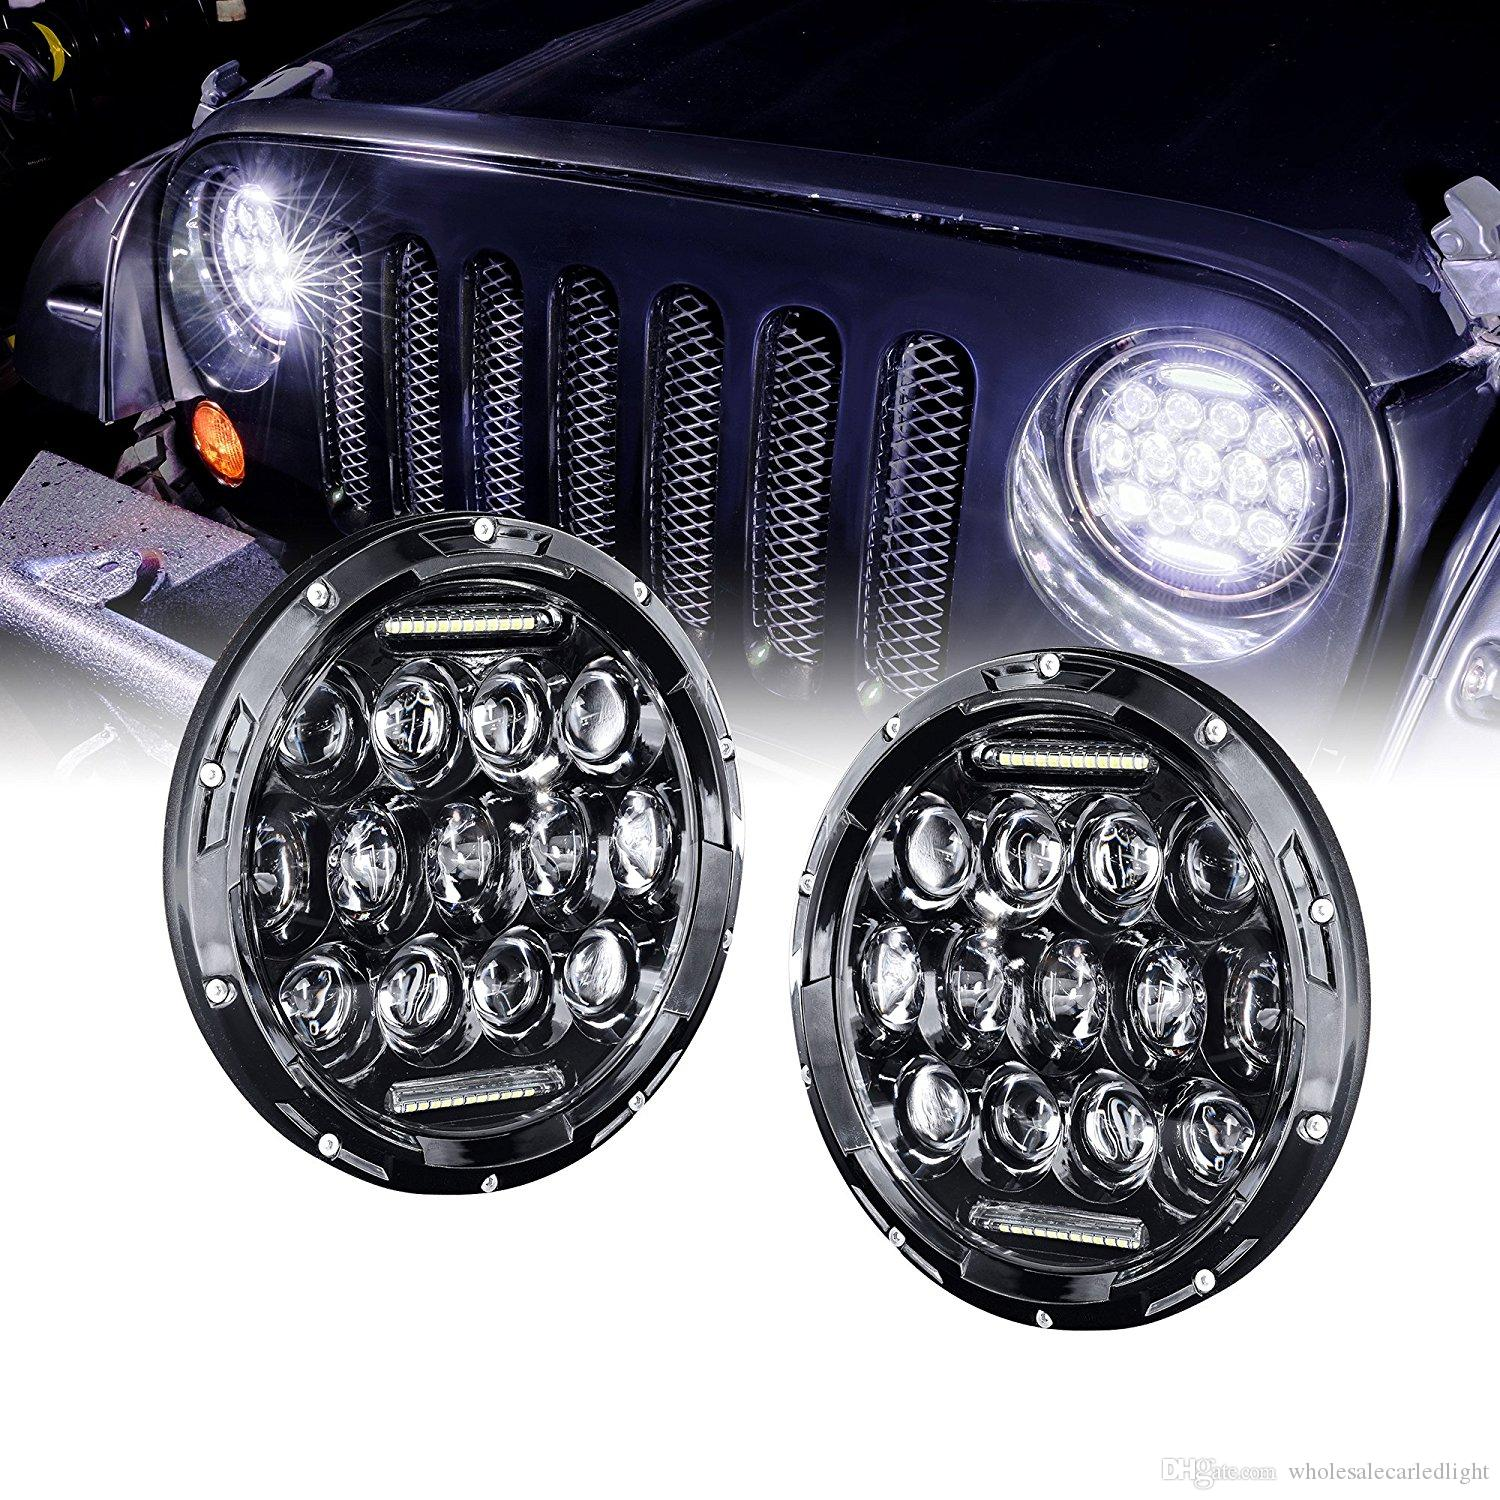 Jeep Jk Headlights >> 7 Inch Round Black Led Headlights With Drl For Jeep Wrangler Jk Tj Lada 4x4 7 Led Headlamp Motorcycle For Harley Davidson From Wholesalecarledlight